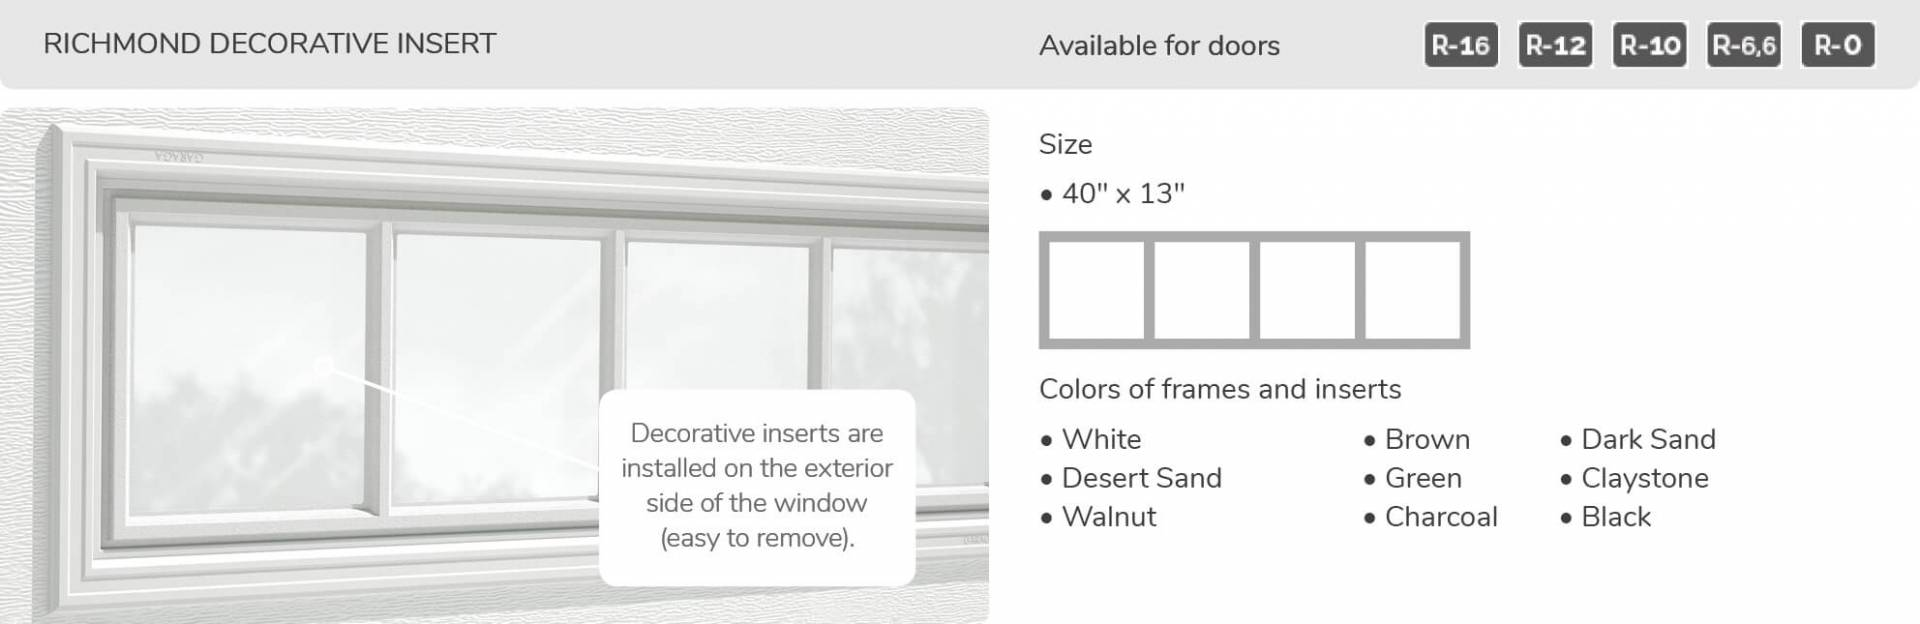 Richmond Decorative Insert, 40' x 13', available for doors R-16, R-12, R-10, R-6,6 and R-0